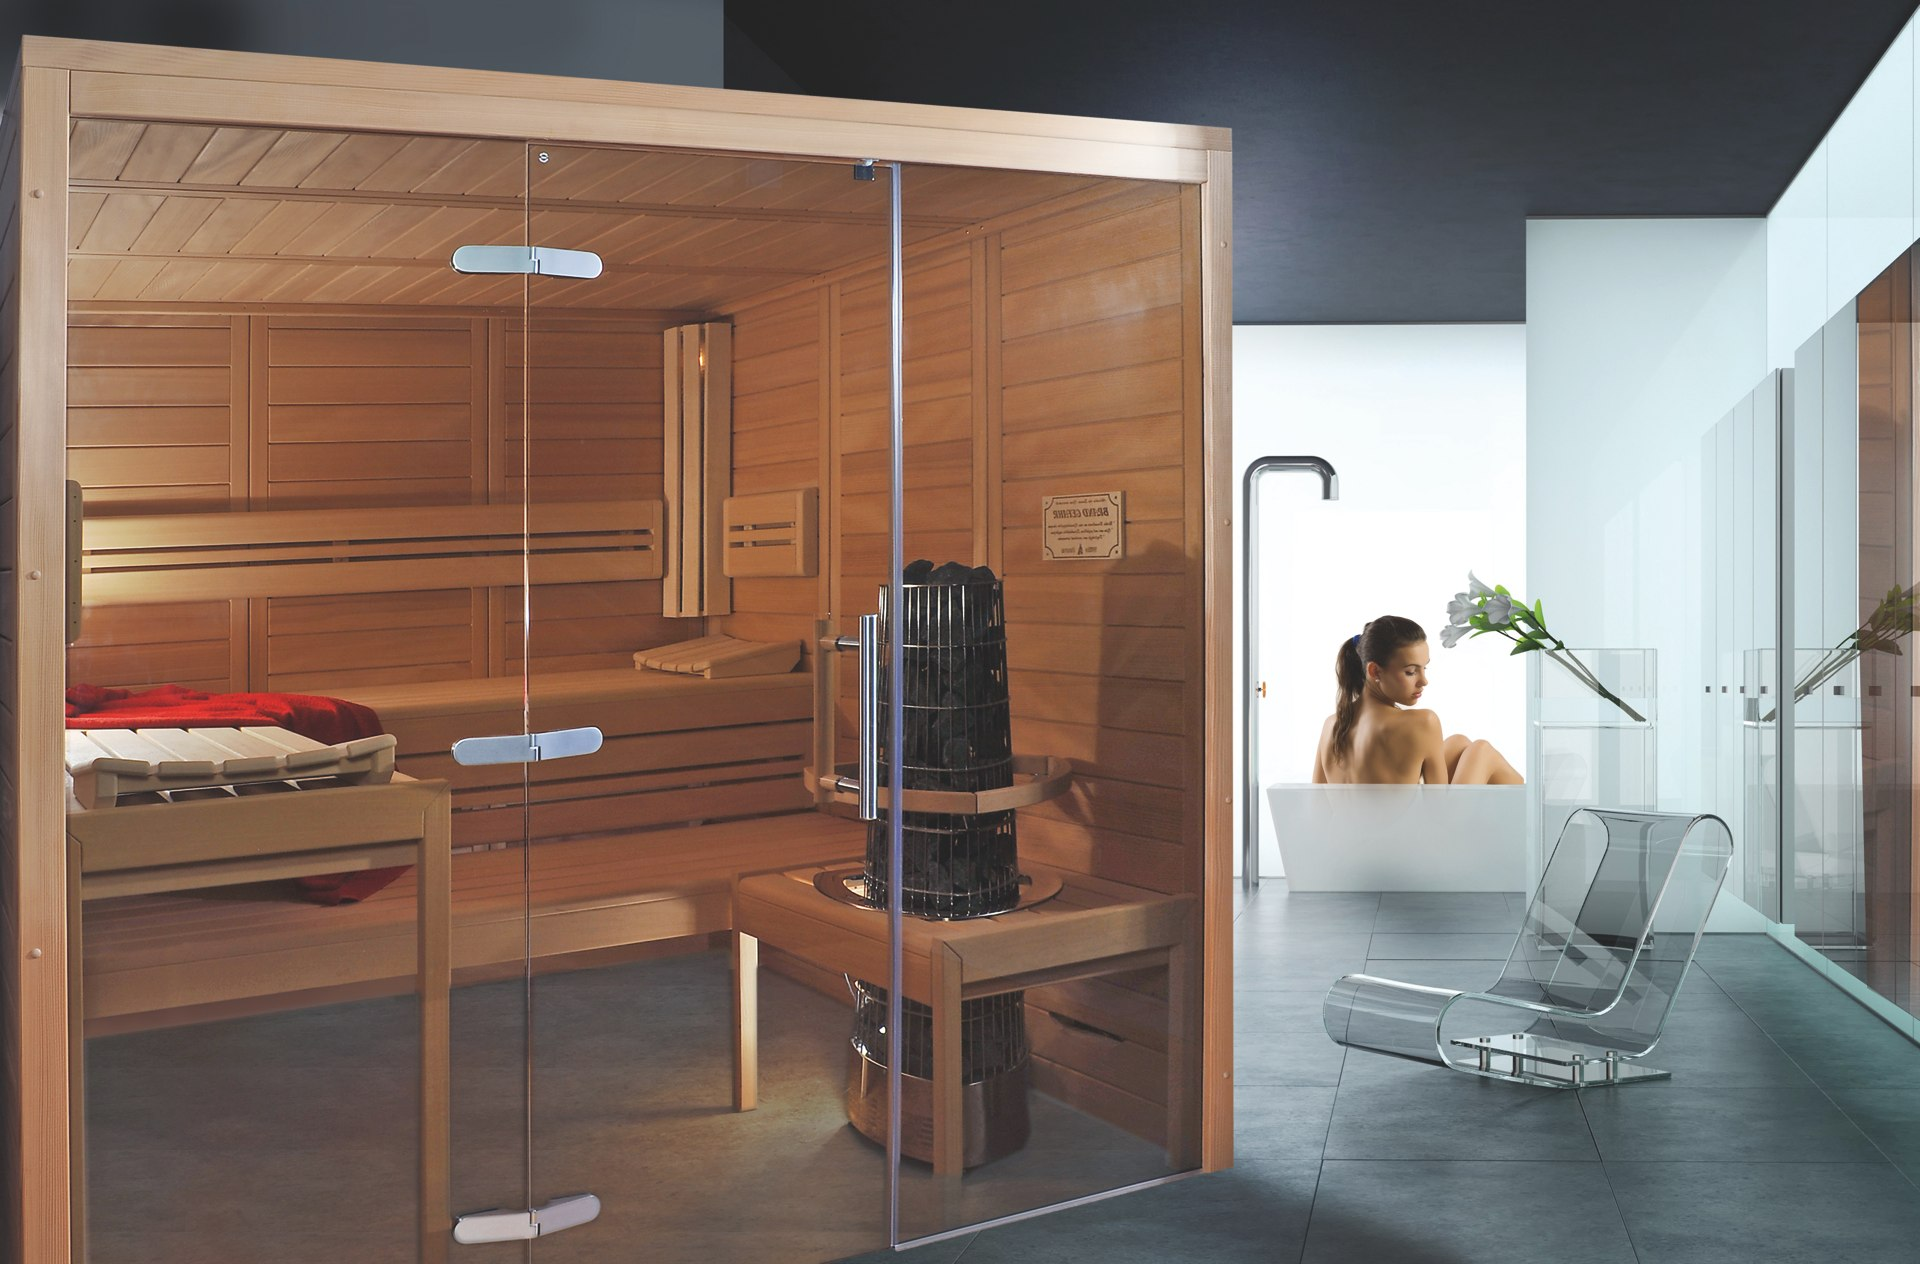 designsauna mit glas sauna mit modernem design. Black Bedroom Furniture Sets. Home Design Ideas